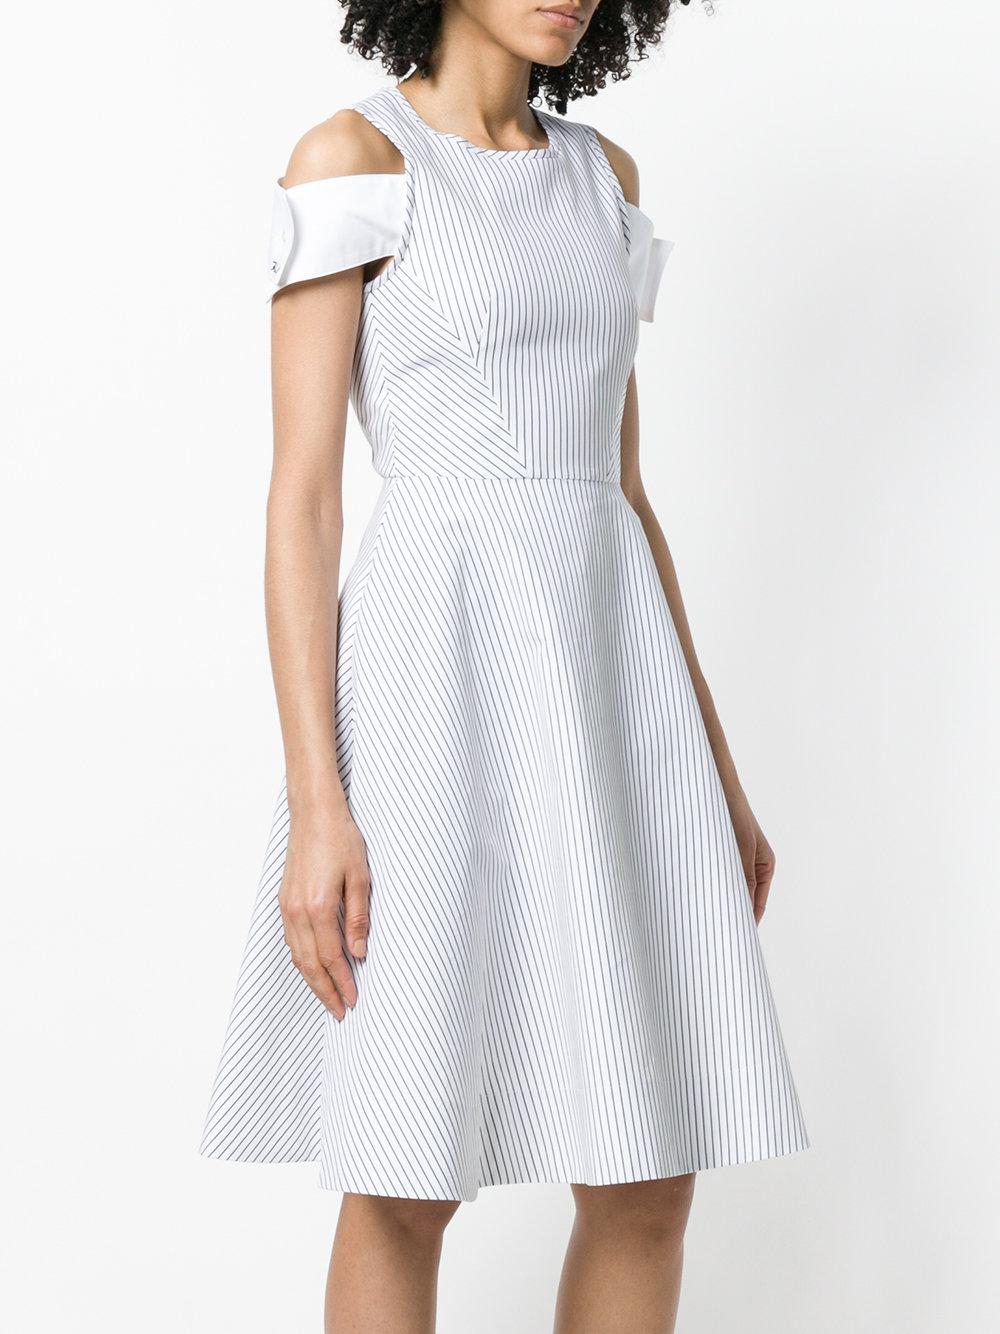 cut-out shoulder dress - White Karl Lagerfeld nKiy5M3f03